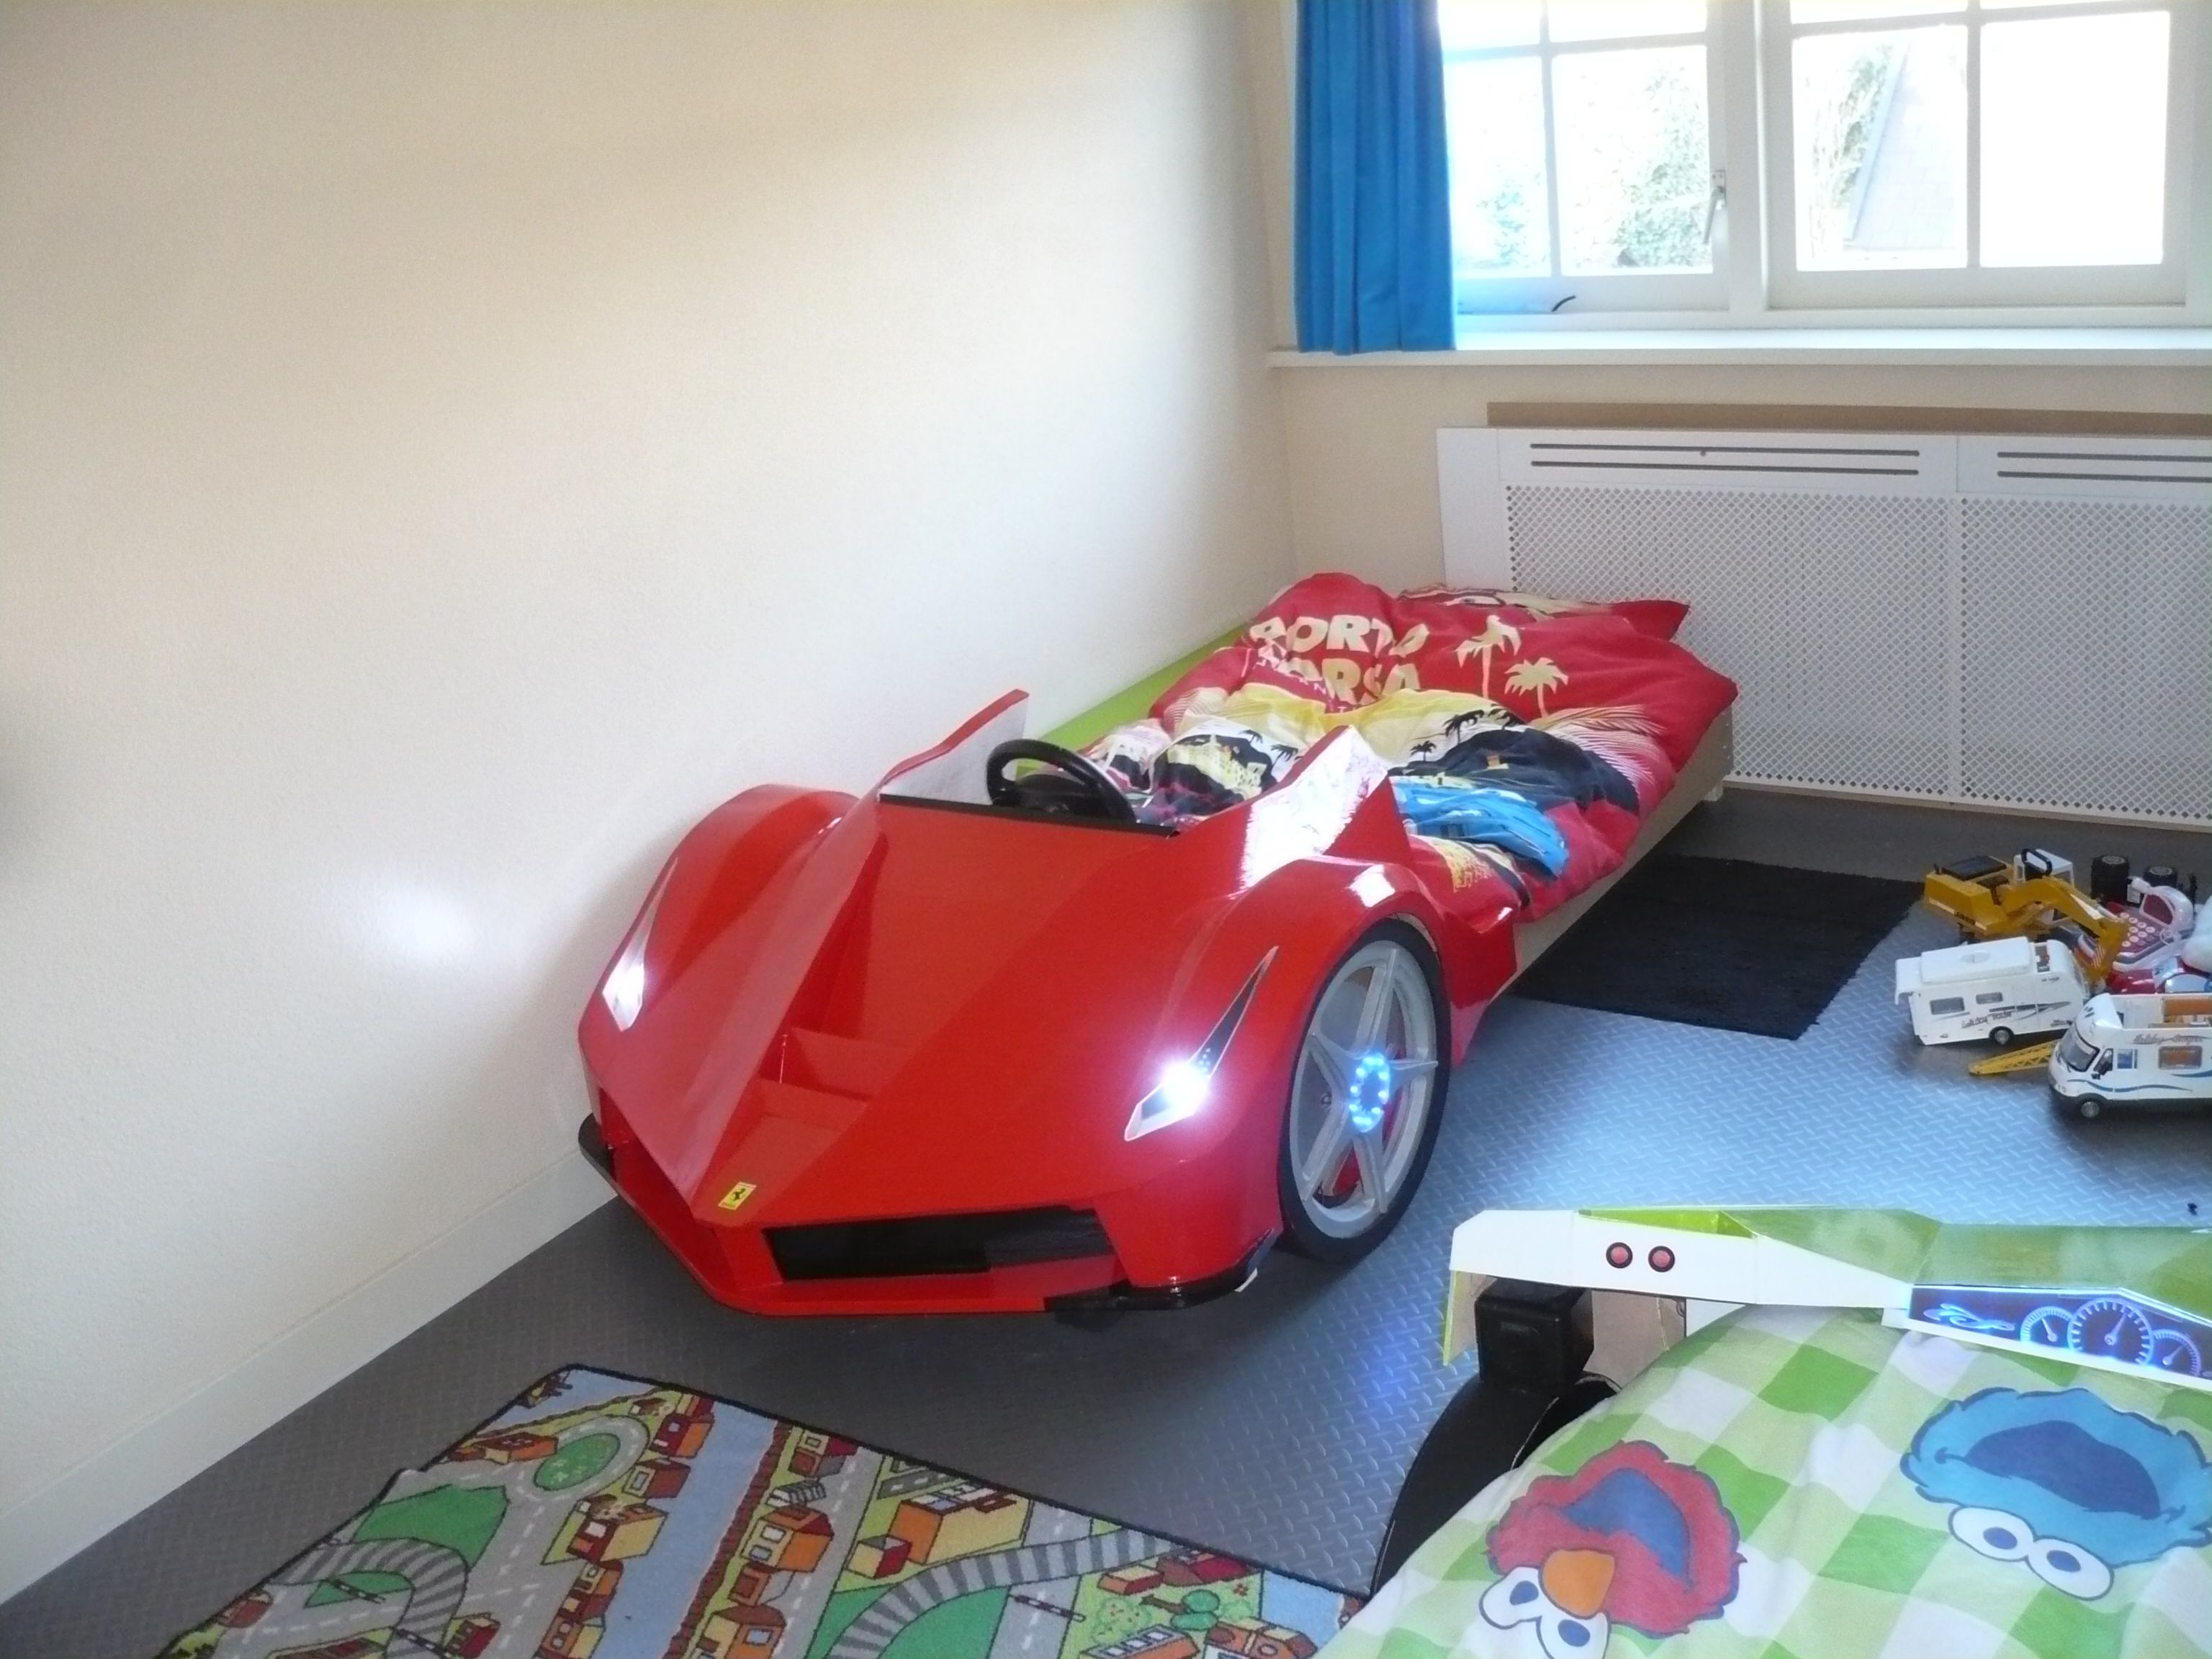 Auto kinderbed, Ferrari bed, autobed, LaFerrari.